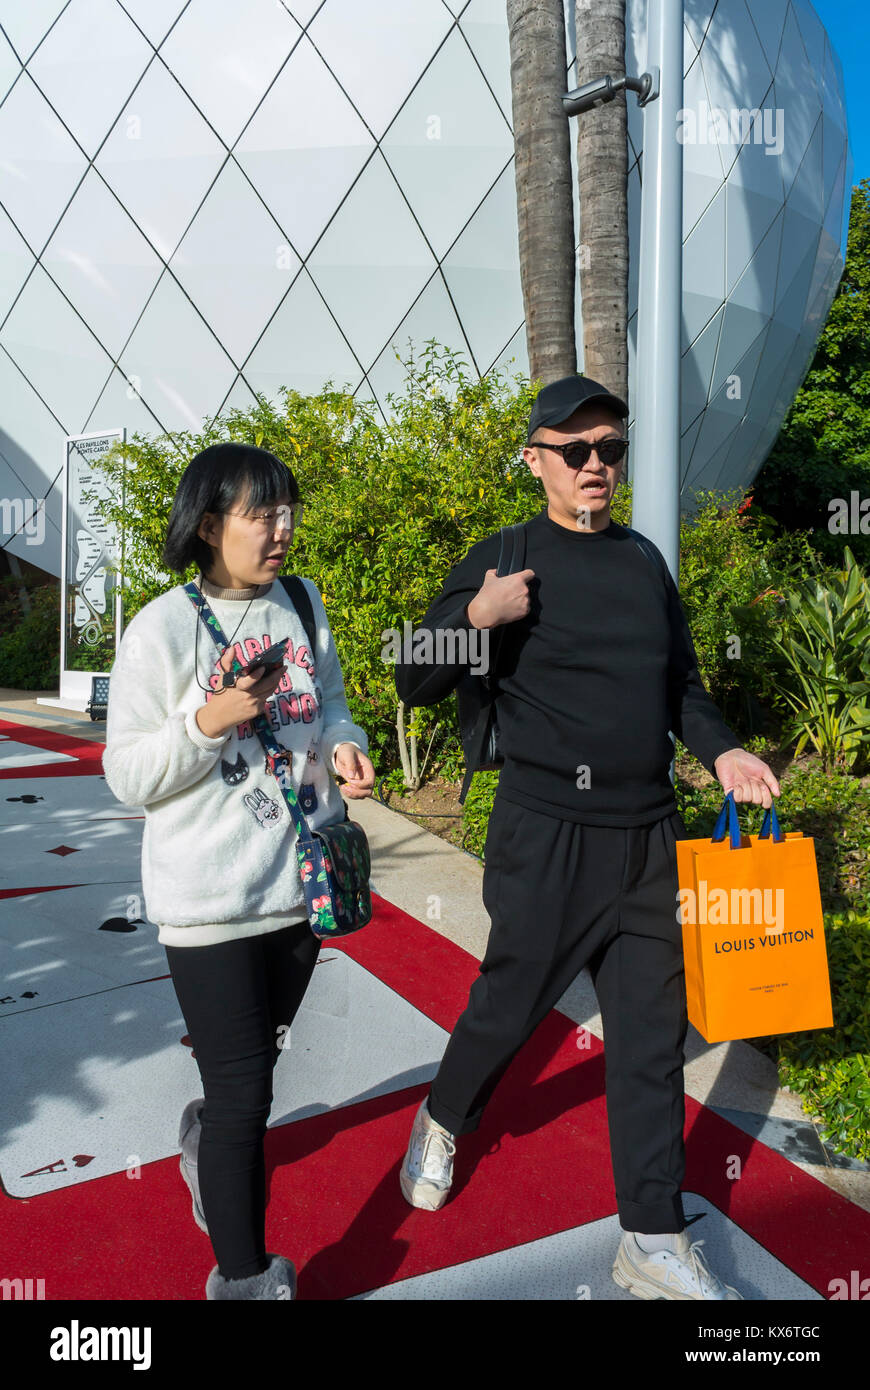 Chinese Tourists Shopping in Monaco, Monte Carlo, Les Pavillions, Luxury Shops, Shopping Center - Stock Image